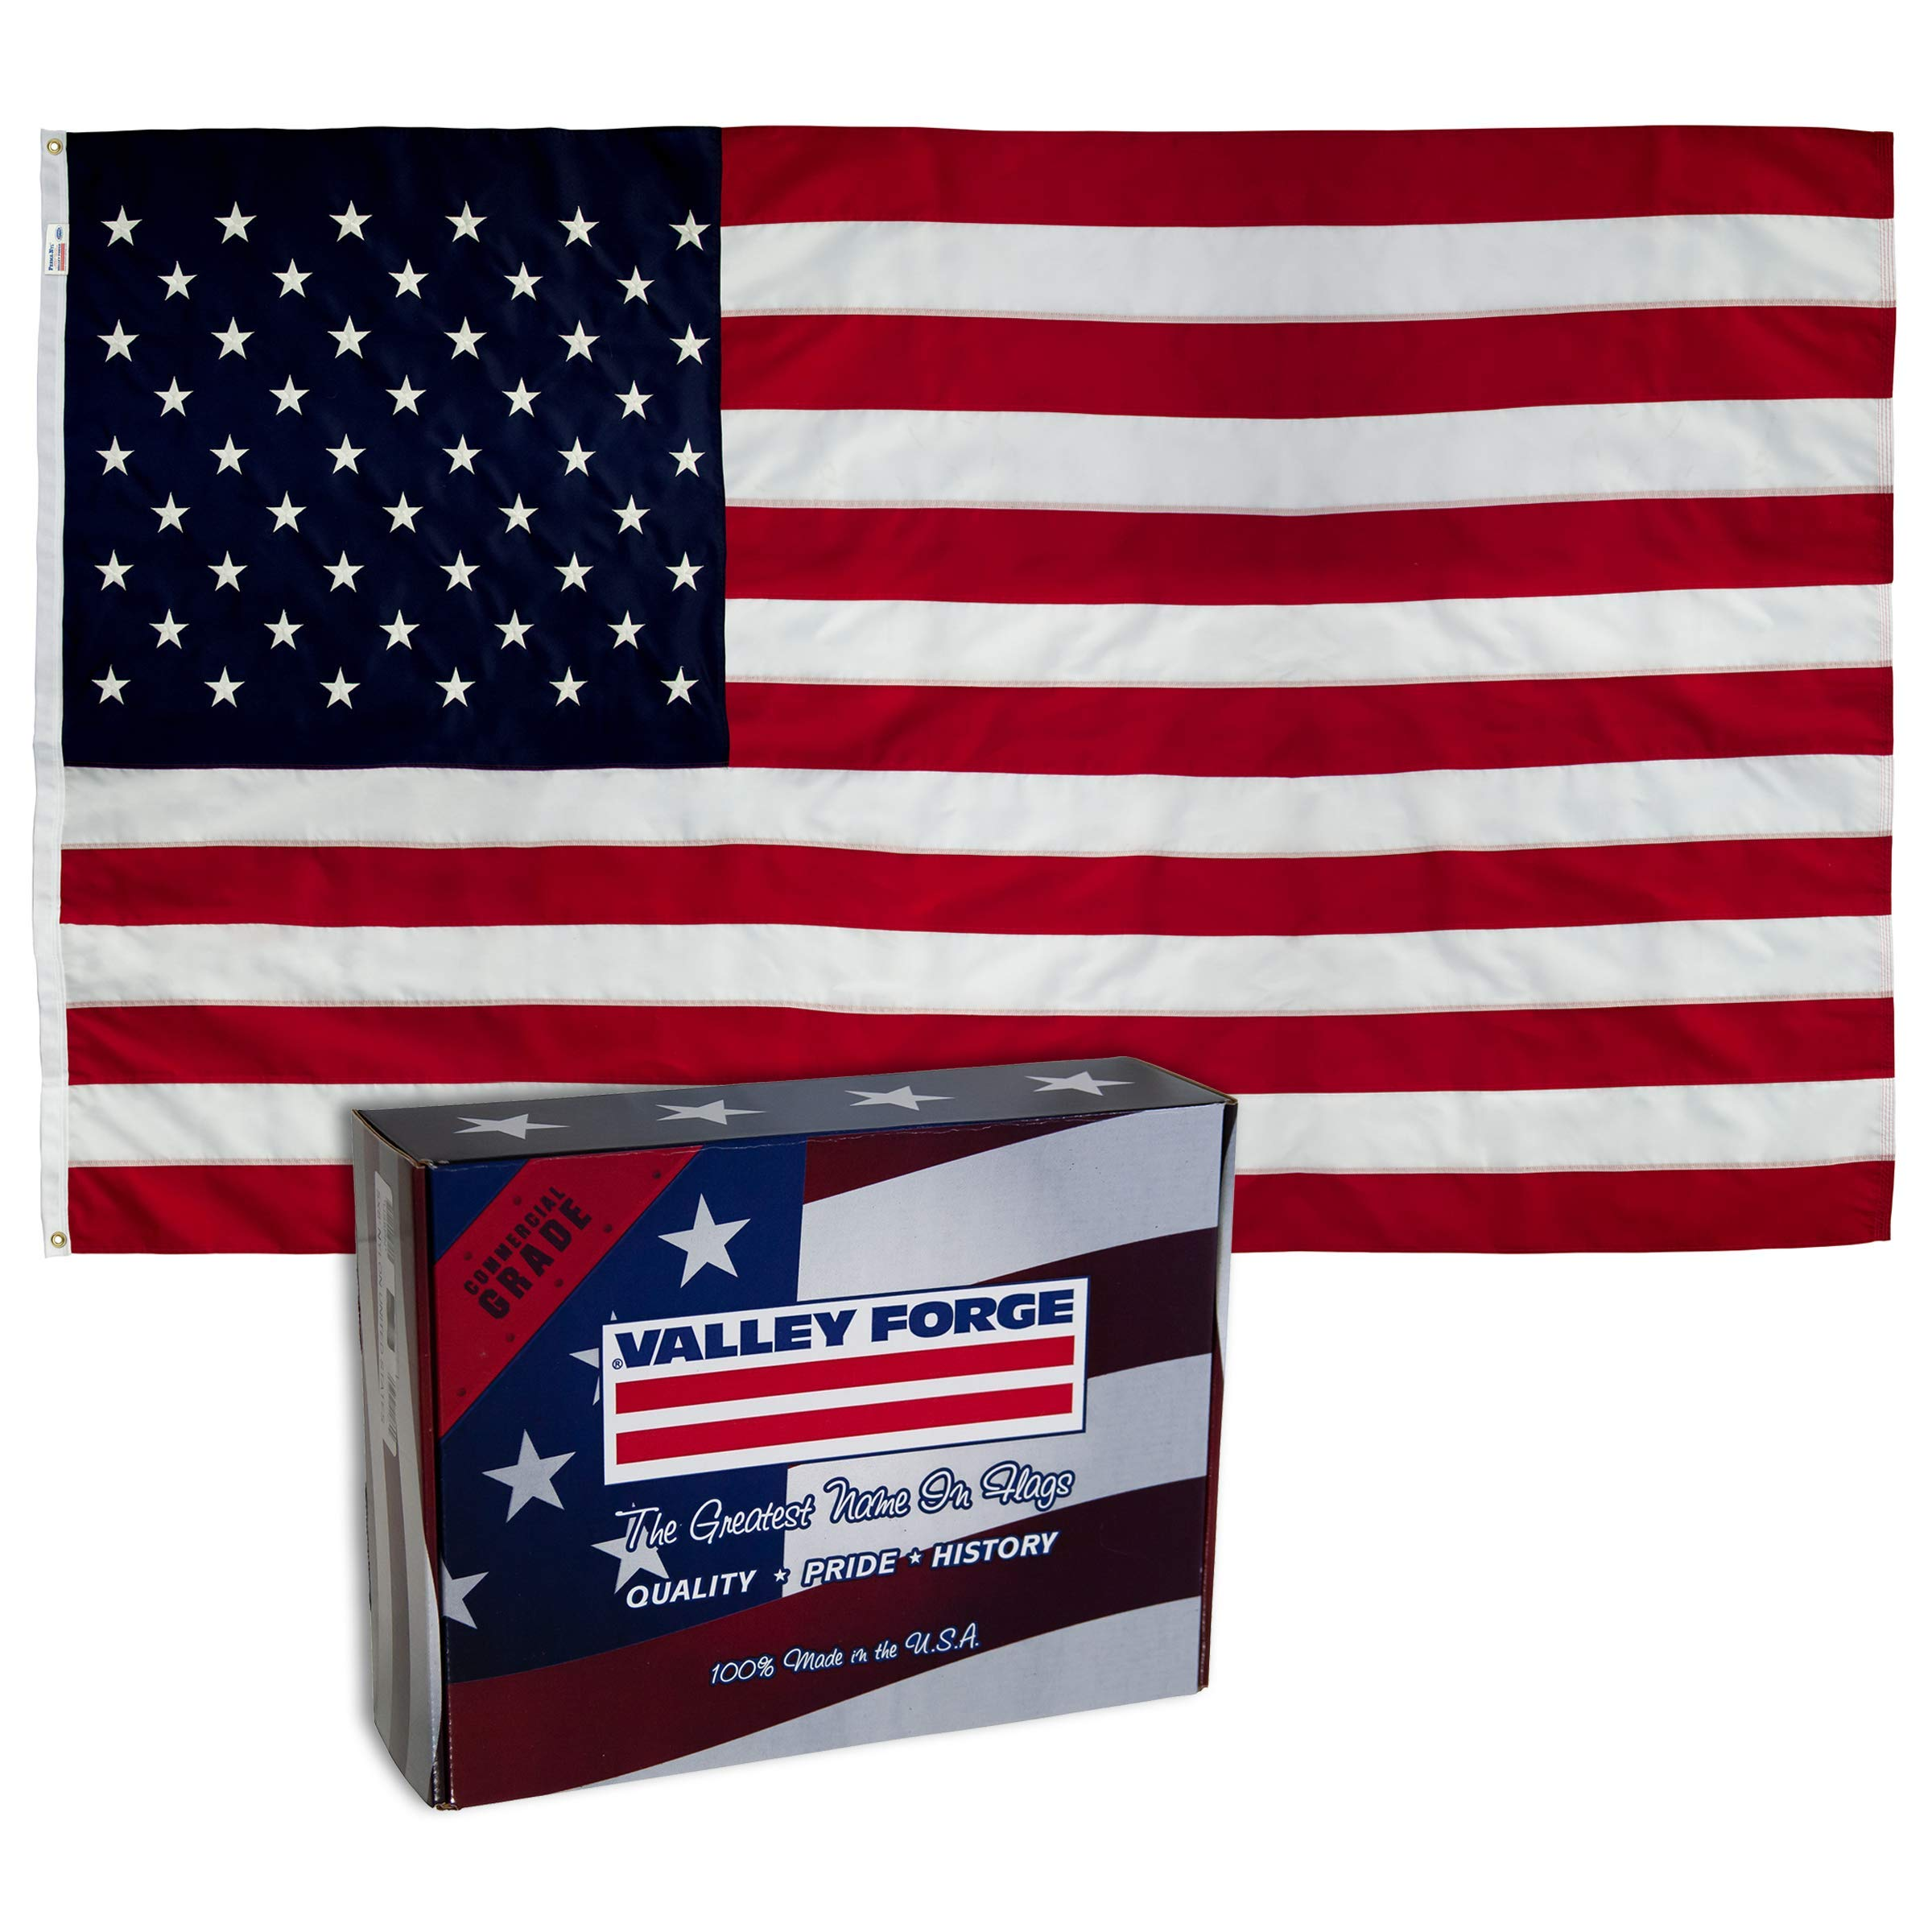 Valley Forge Flag US4PN Uspn-1 American Flag, 4'x6' (Renewed) by Valley Forge